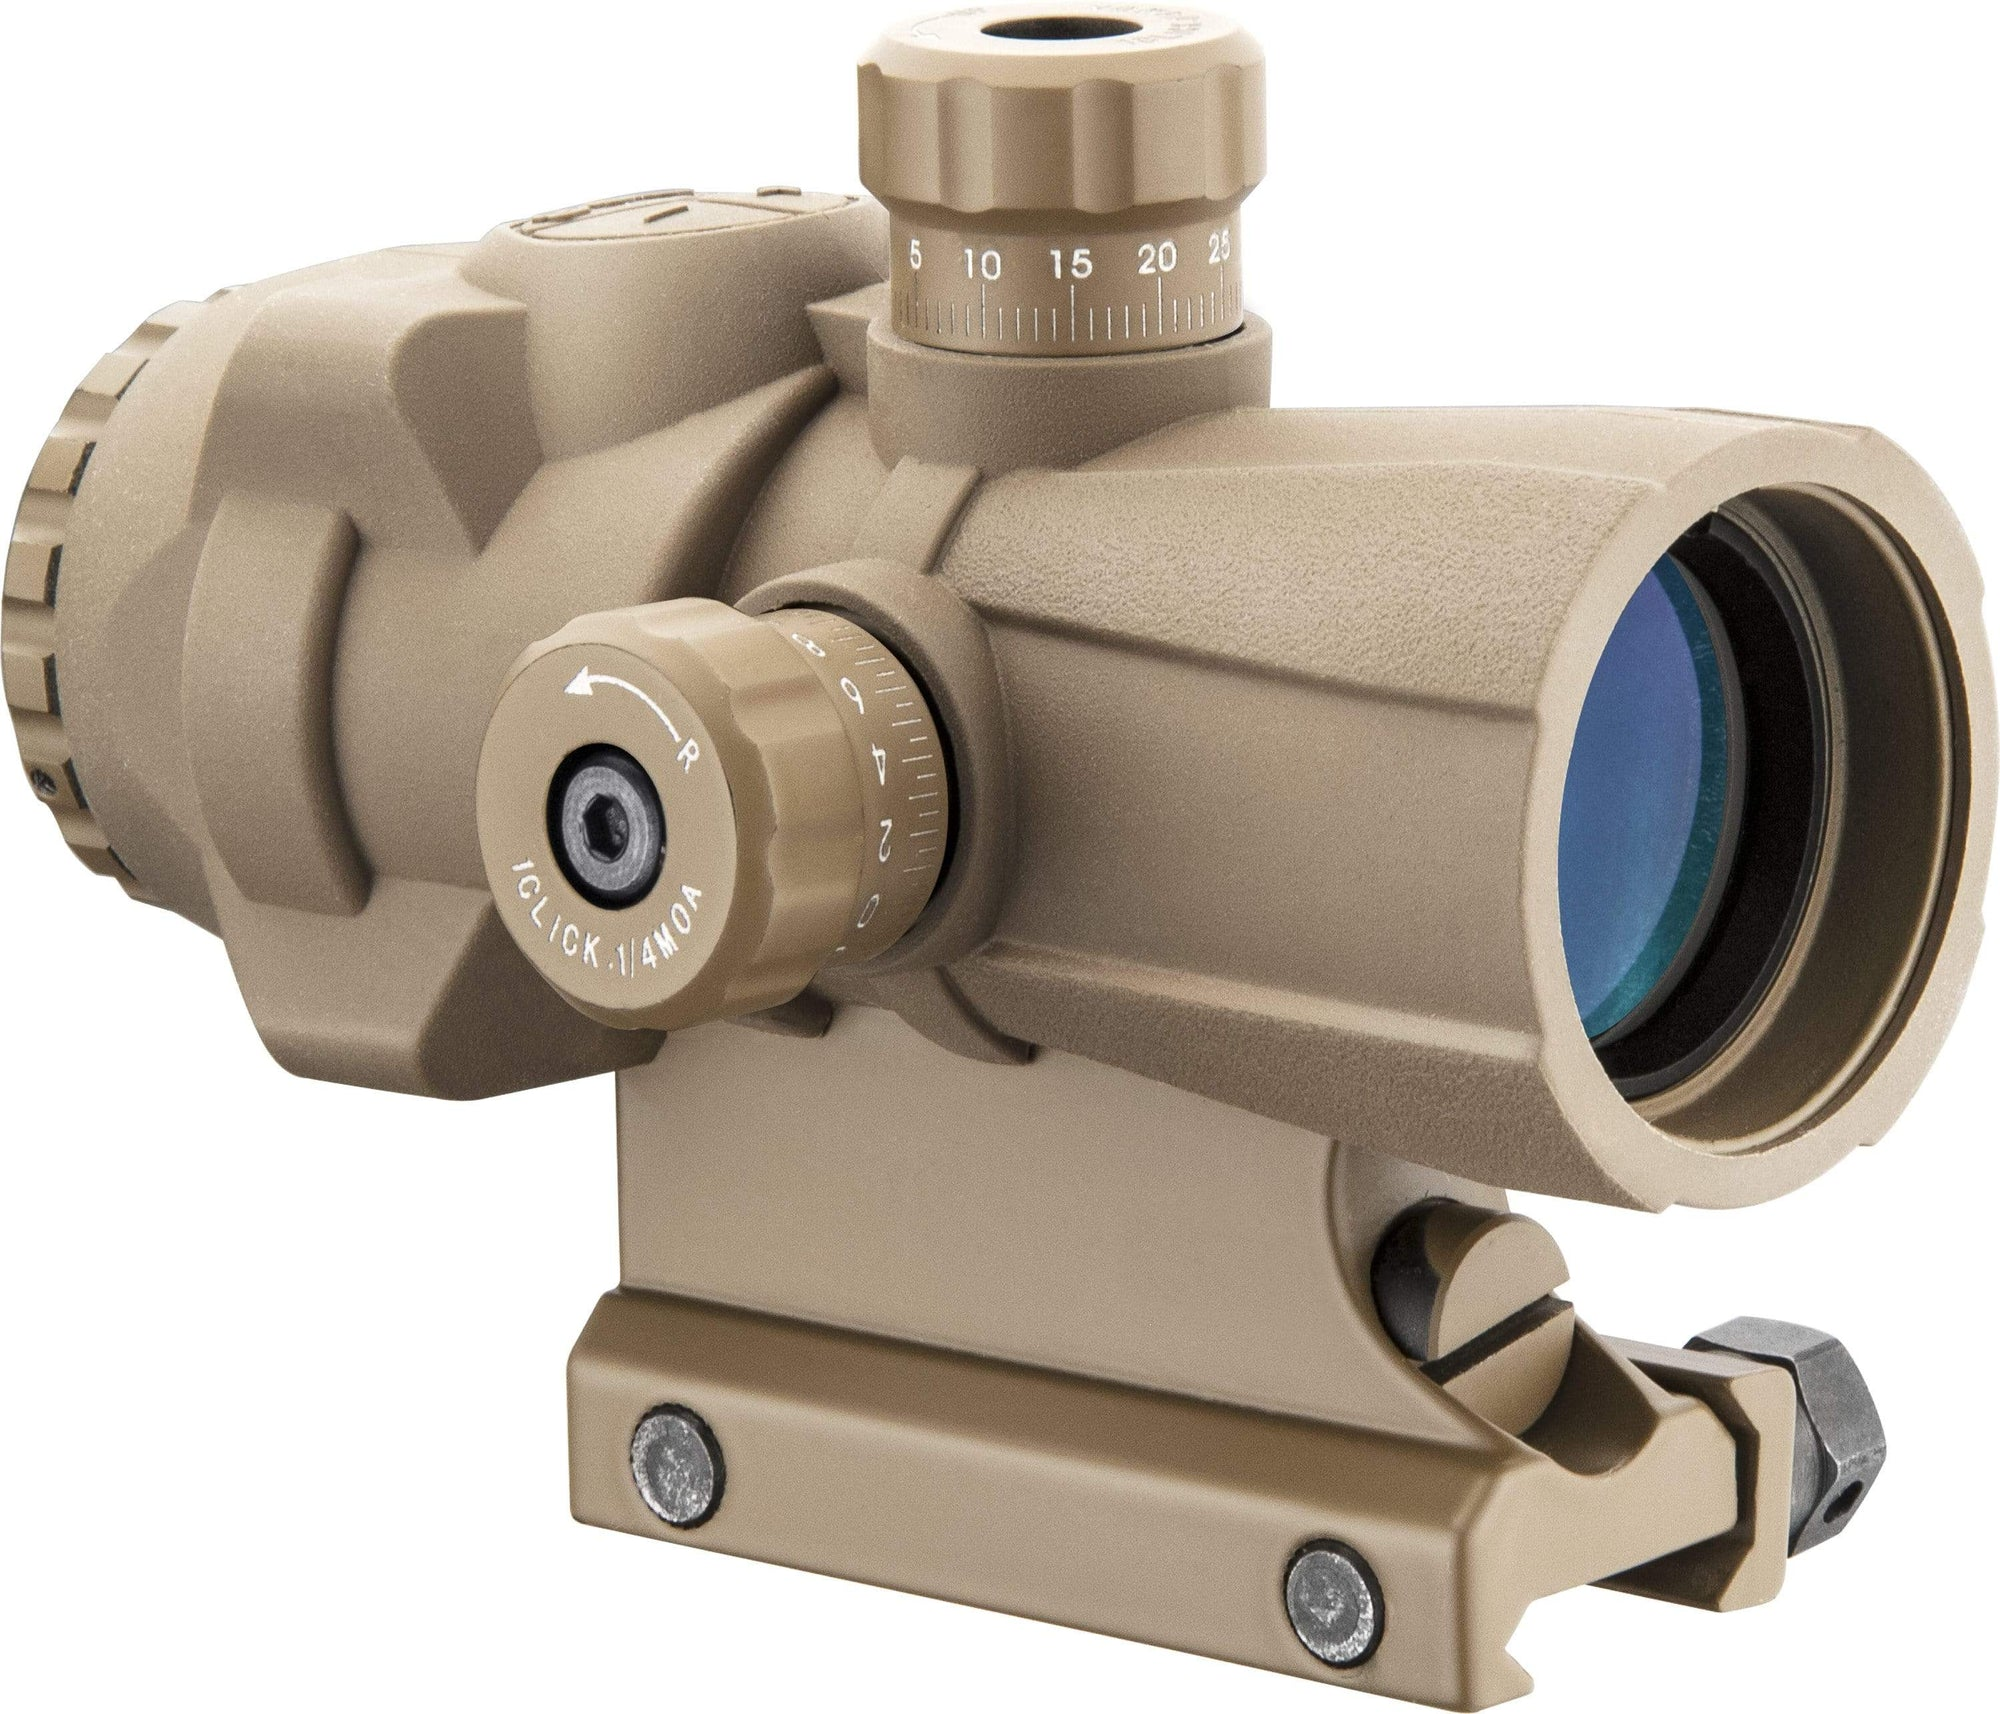 Barska 3 x 30mm AR-X PRO Prism Scope by Barska (Tan) Flat Dark Earth Armadillo Safe and Vault